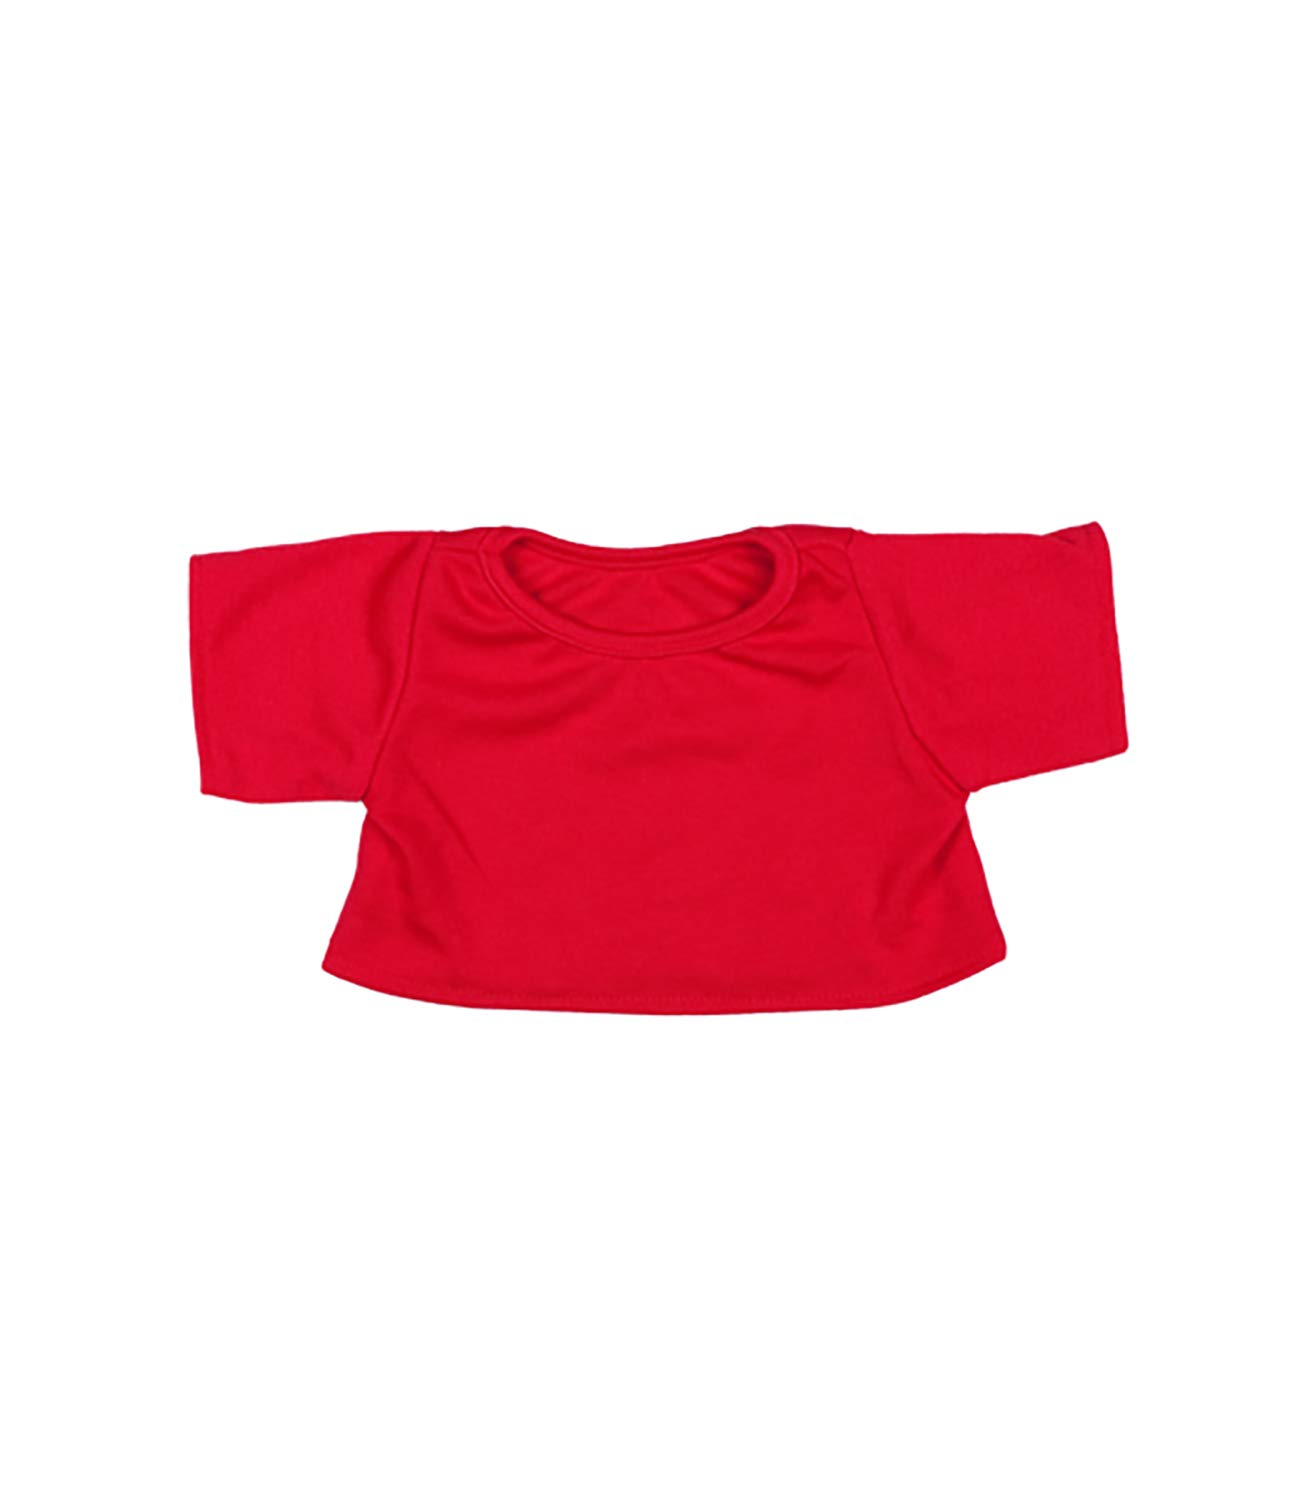 Shining Star and 8-10 Make Your Own Stuffed Animals and Build-A-Bear Red T-Shirt Outfit Fits Most 8-10 Webkinz